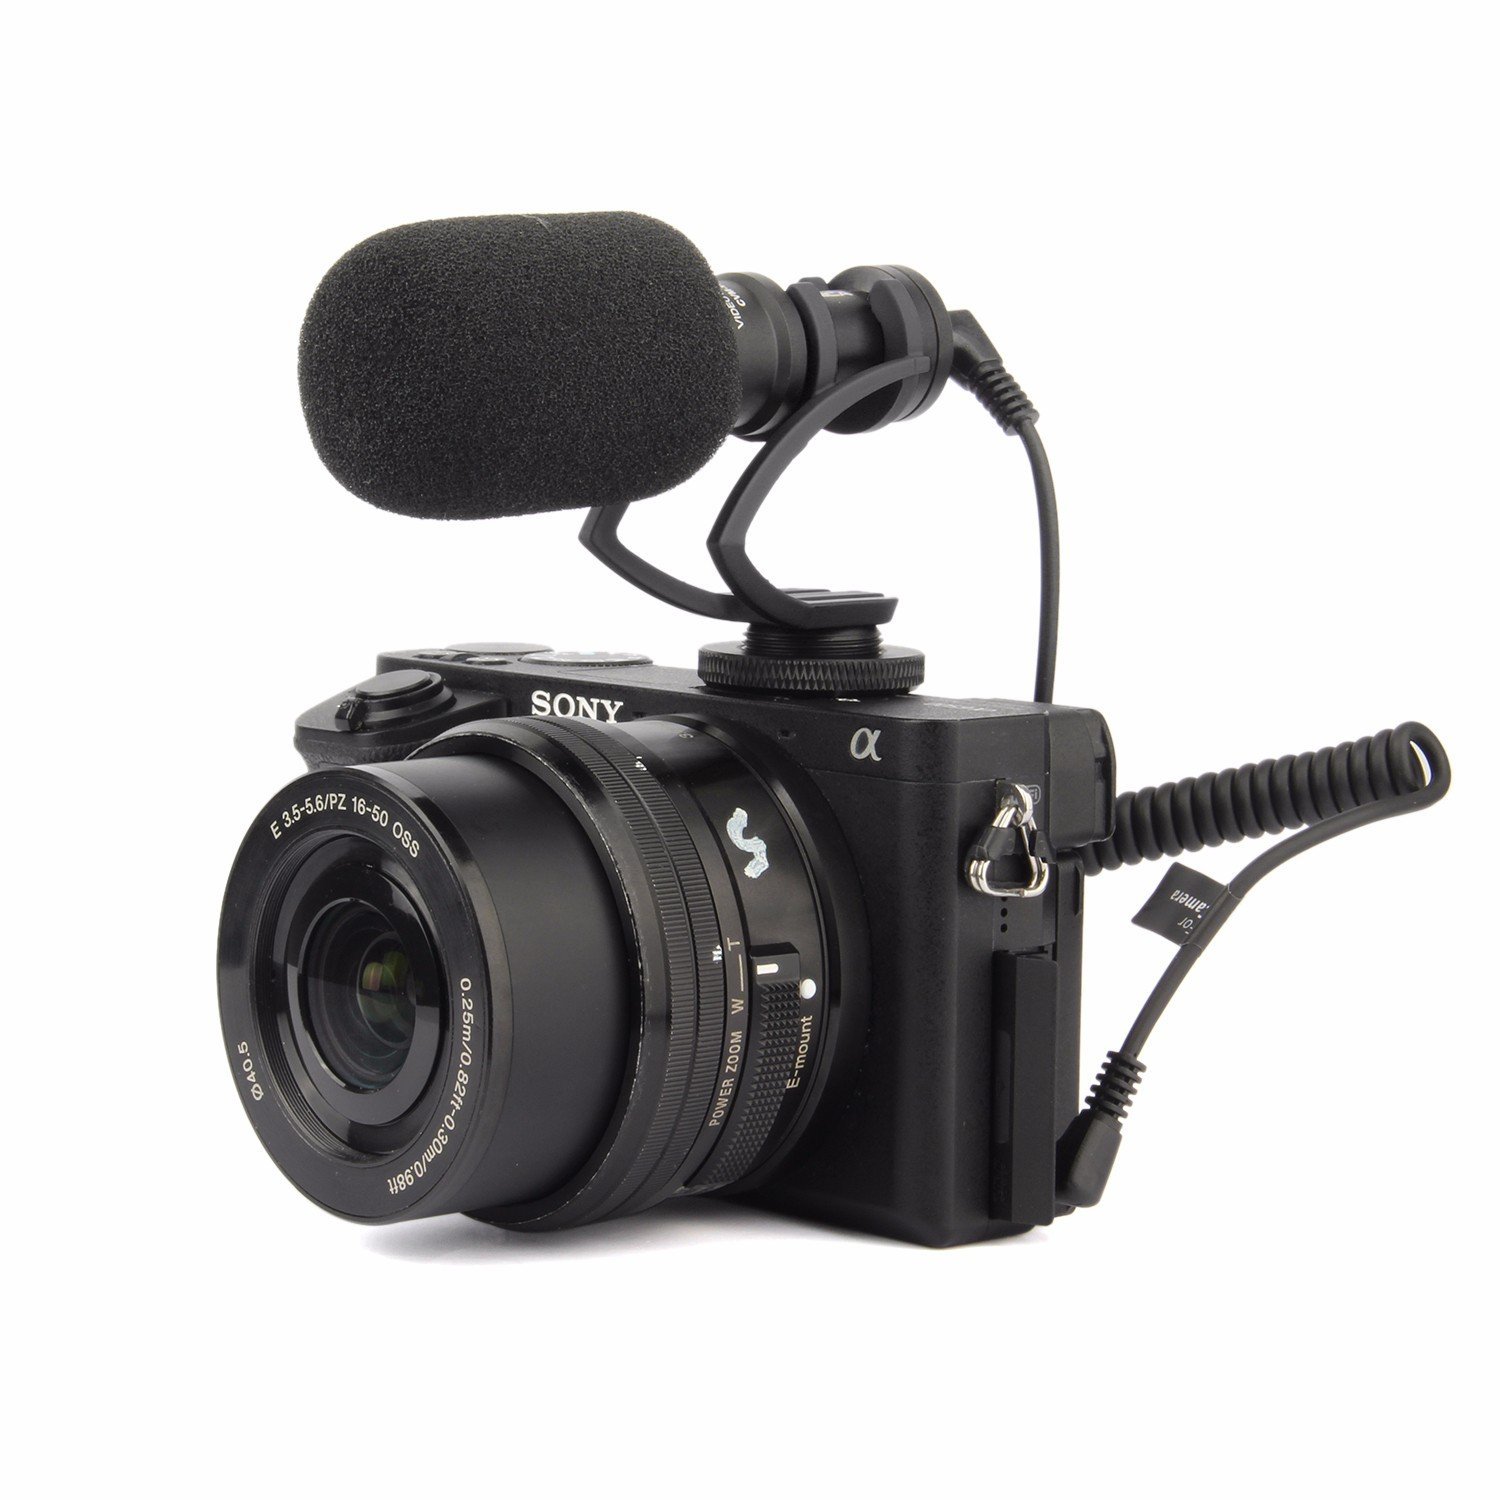 EACHSHOT Comica CVM-VM10 II Cardioid Directional Shotgun Video Microphone for DJI OSMO Smartphone GoPro and Micro Camera with Black Shock-Mount Windscreen Wind Muff and Carrying Case (Black)